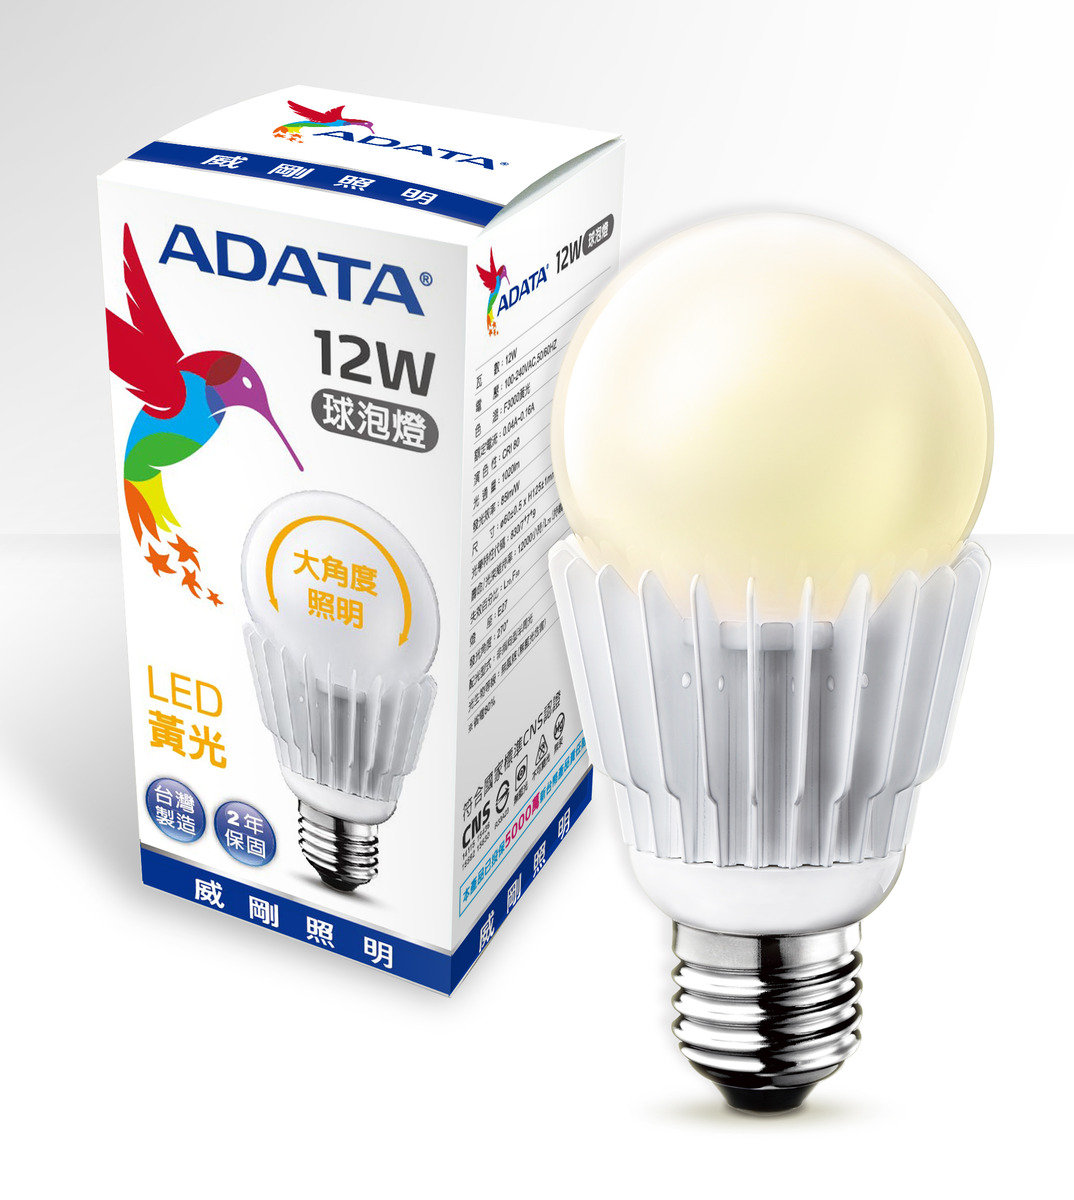 Led Online Shop Adata Adata Led Bulb 12w Hktvmall Online Shopping